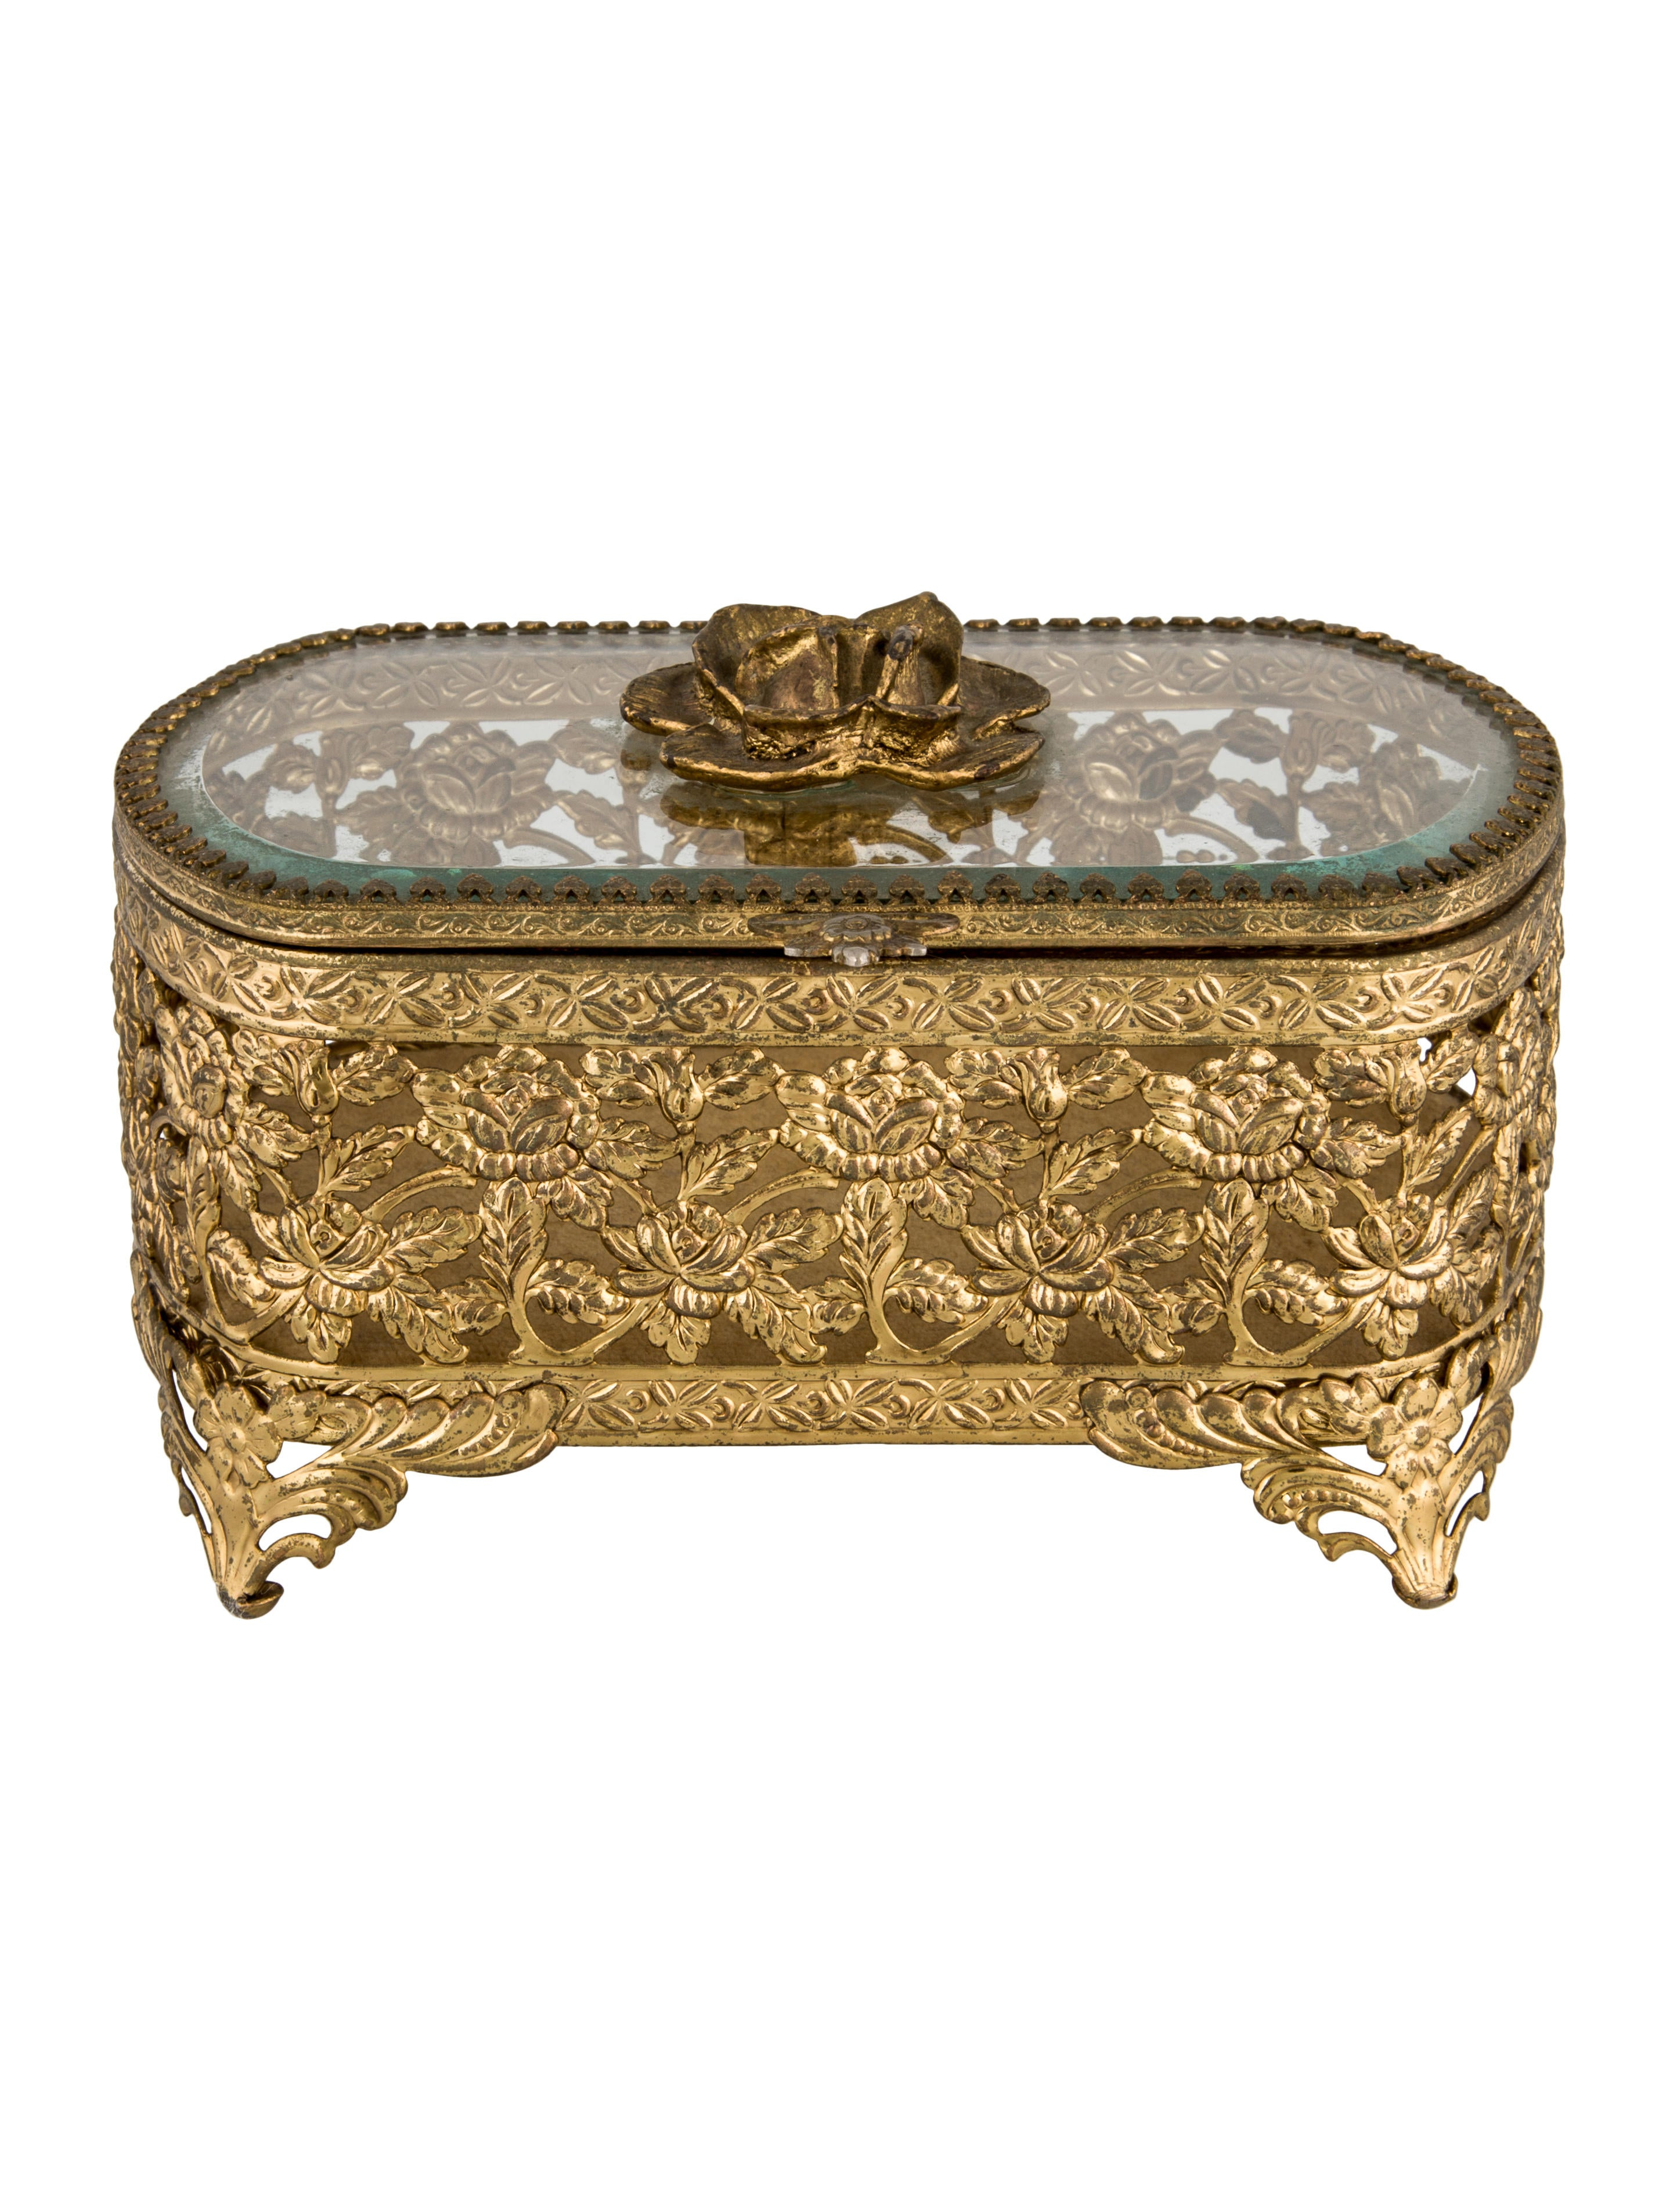 Vintage Jewelry Boxes Decor And Accessories Jelbx20016